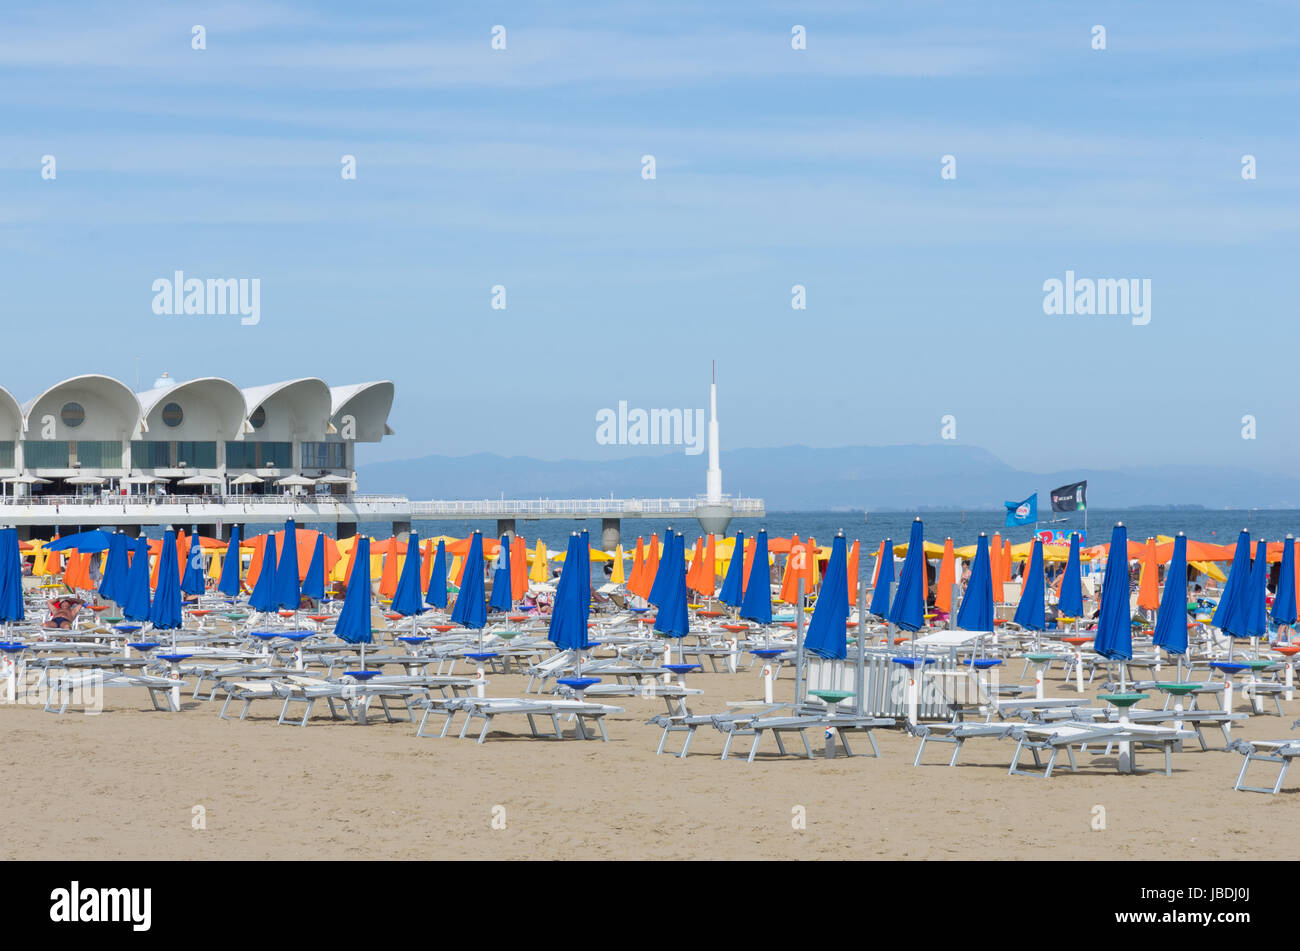 The beach of Lignano Sabbiadoro (Italy) with the Terrazza a mare on ...